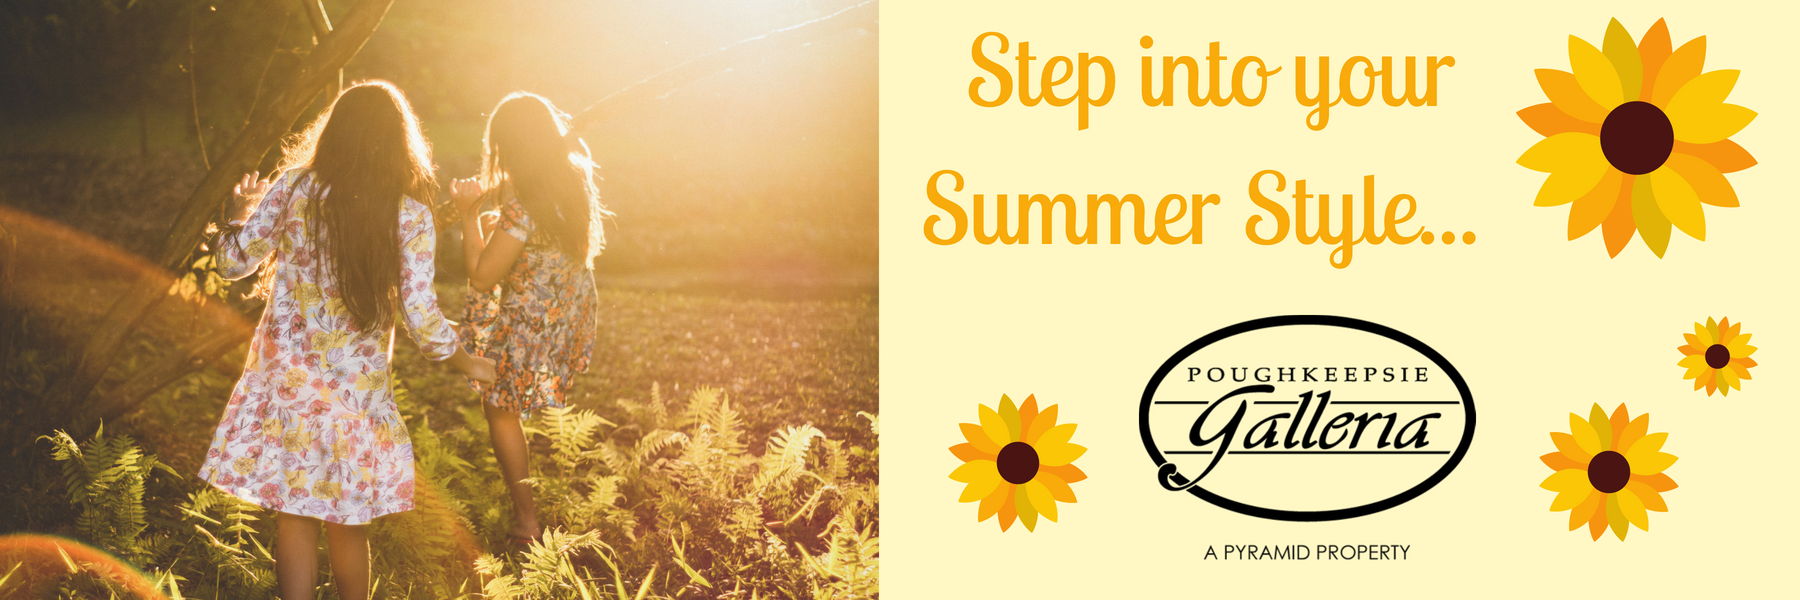 Step into your Summer Style @